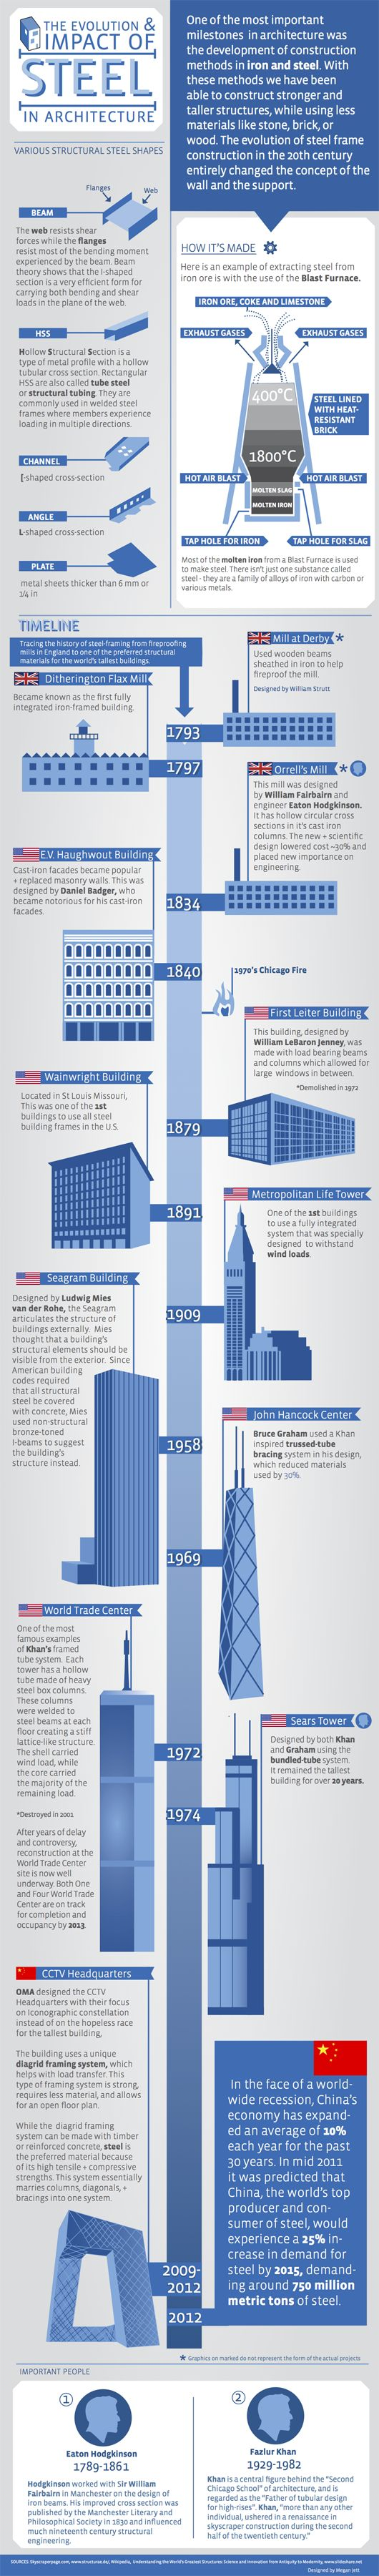 Infographic: The evolution & impact of steel in architecture